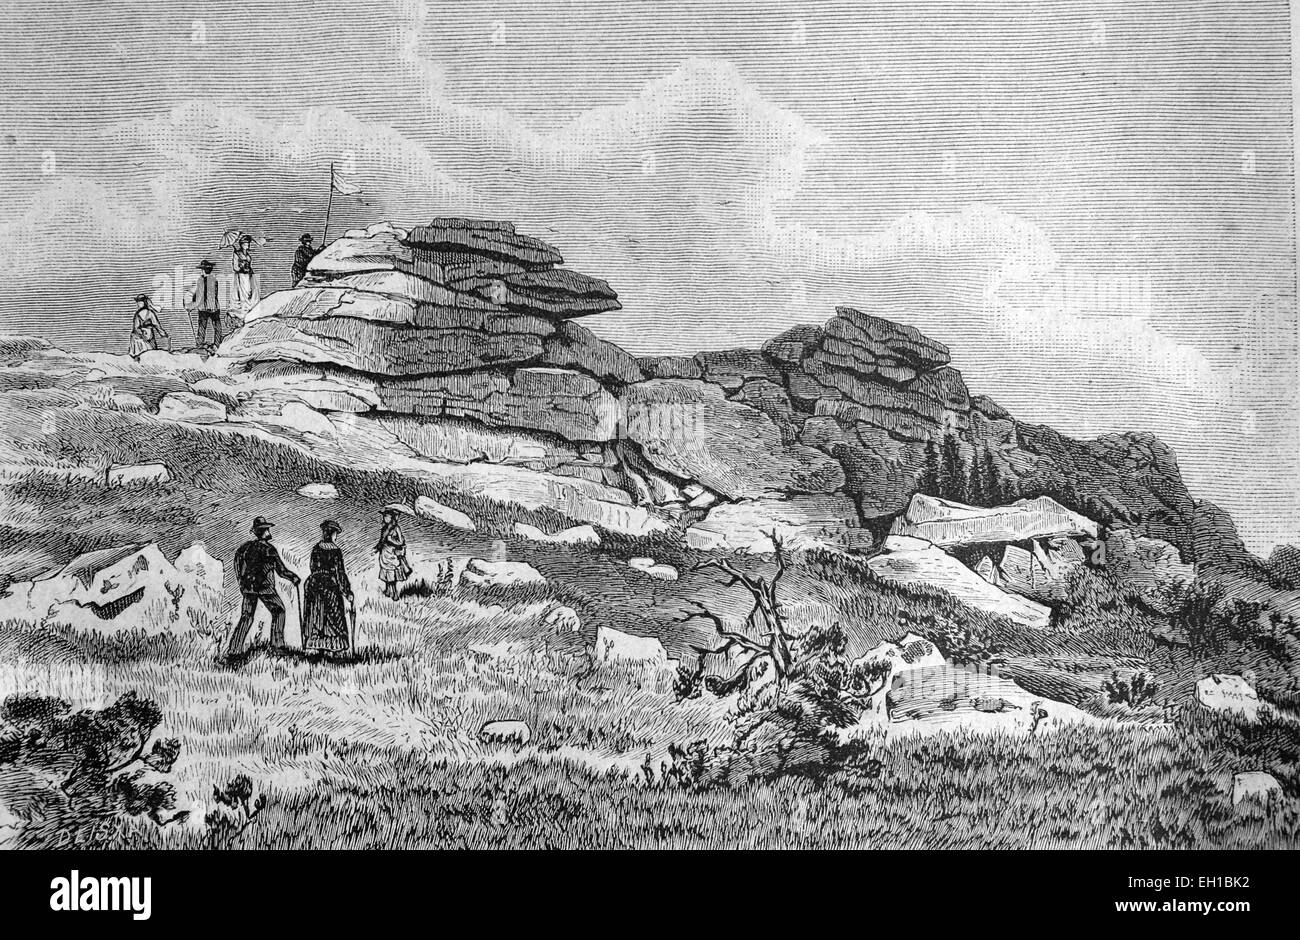 The witches altar on the Brocken, Harz, Germany, historical illustration, 1877 - Stock Image